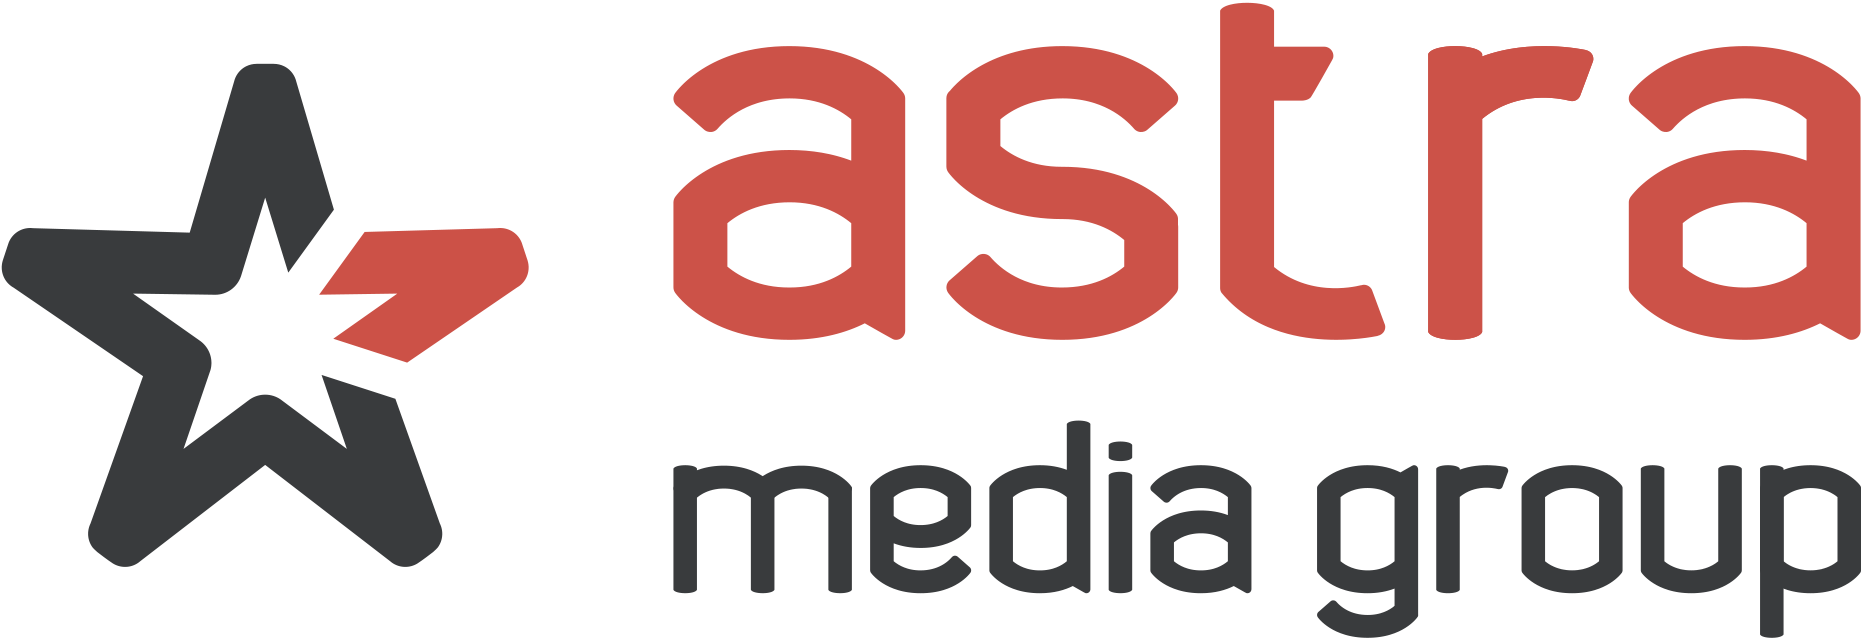 Astra Media Group